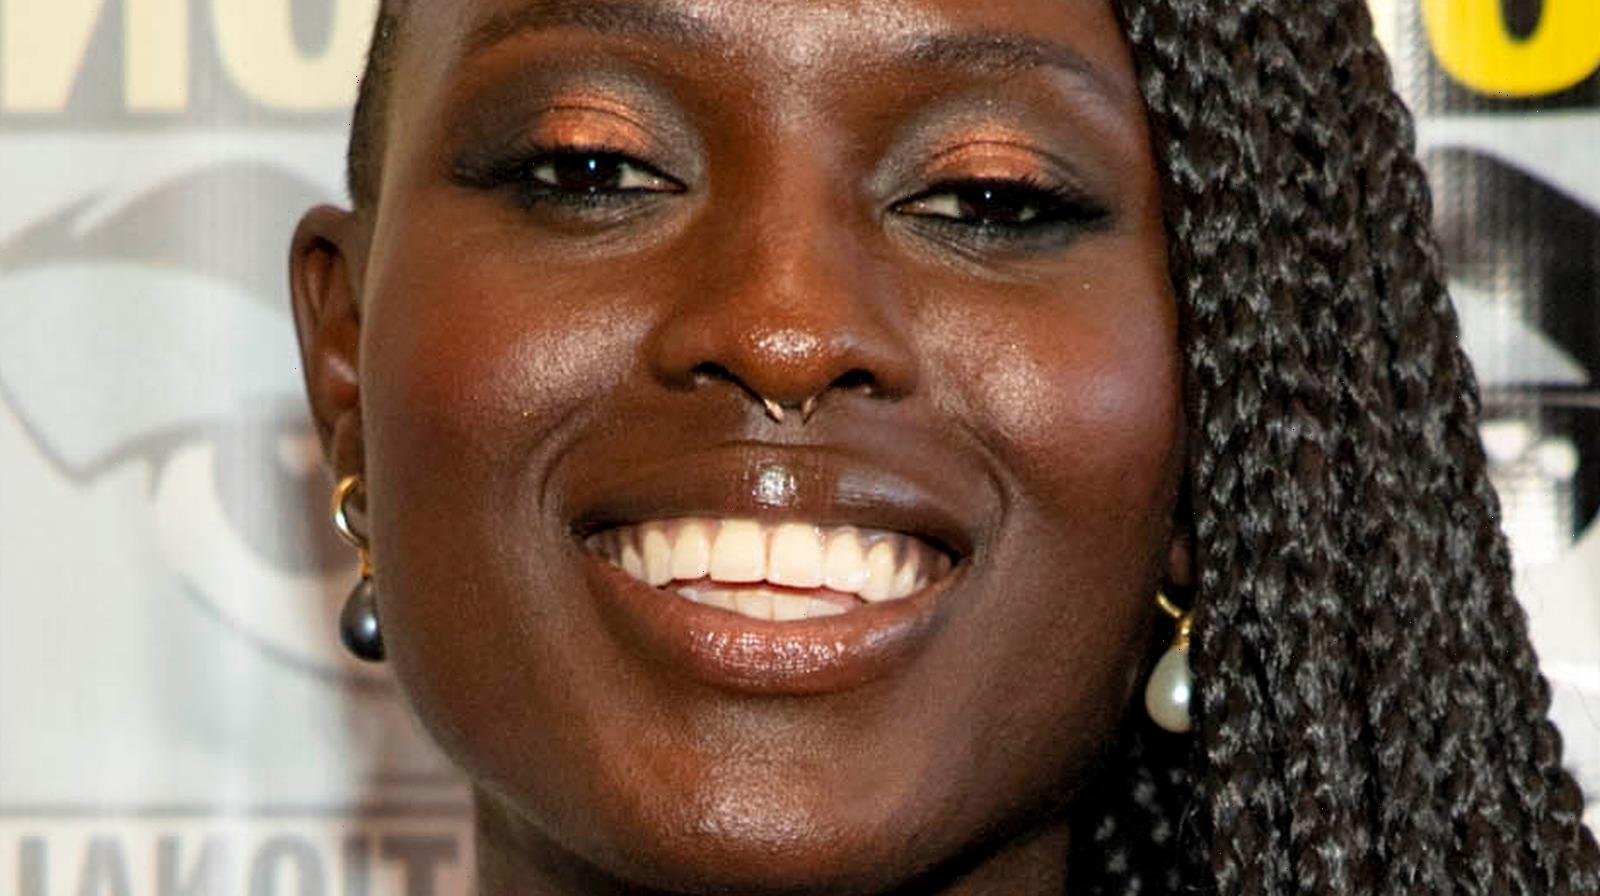 The Strange Thing Jodie Turner-Smith Just Revealed About Her Relationship With Joshua Jackson